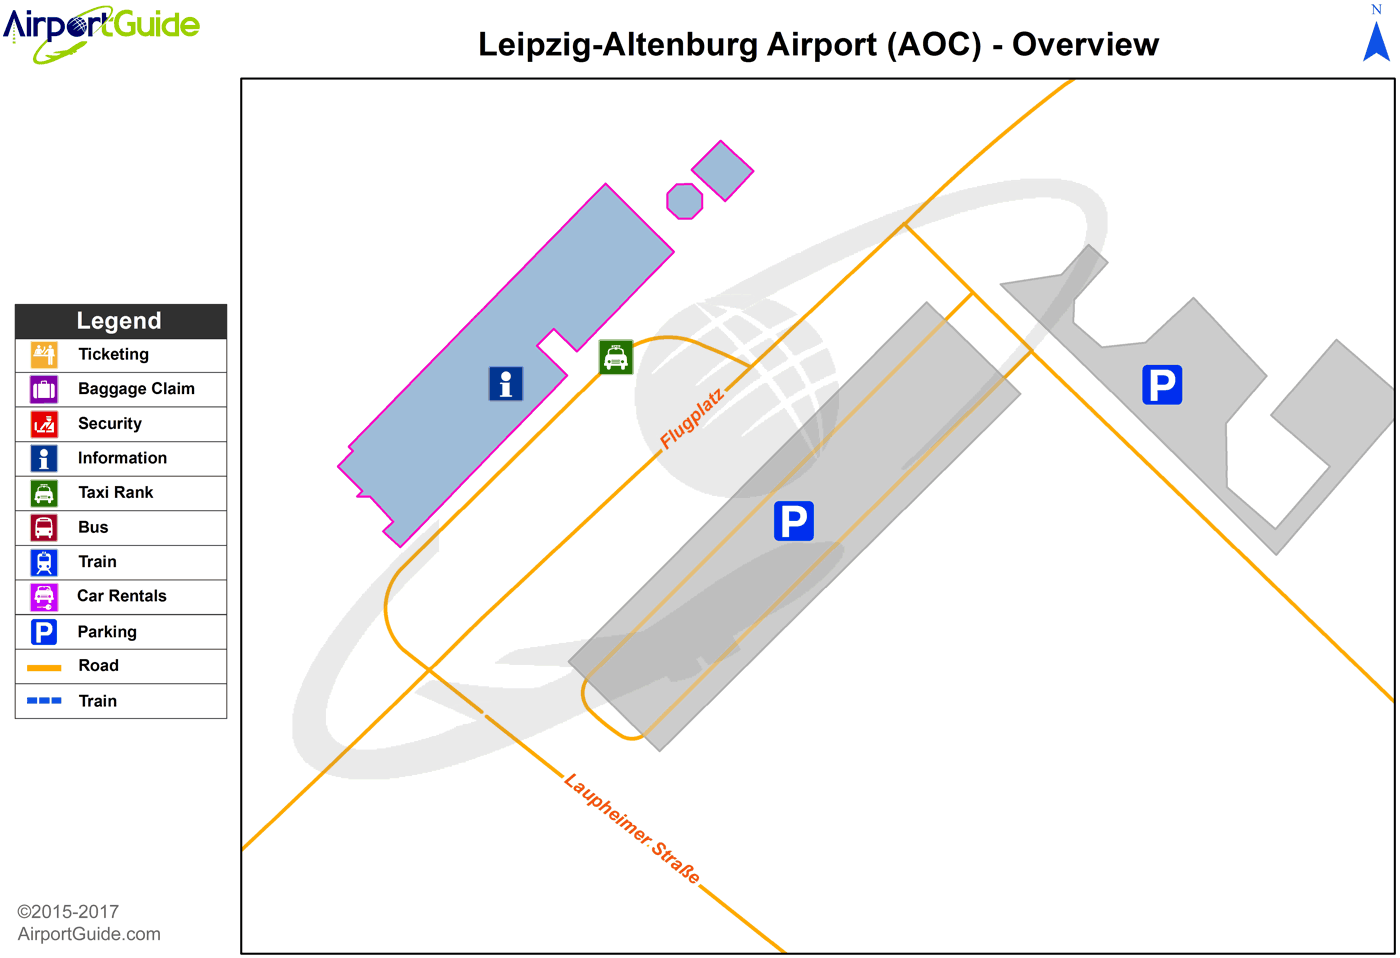 Altenburg - Leipzig-Altenburg (AOC) Airport Terminal Map - Overview